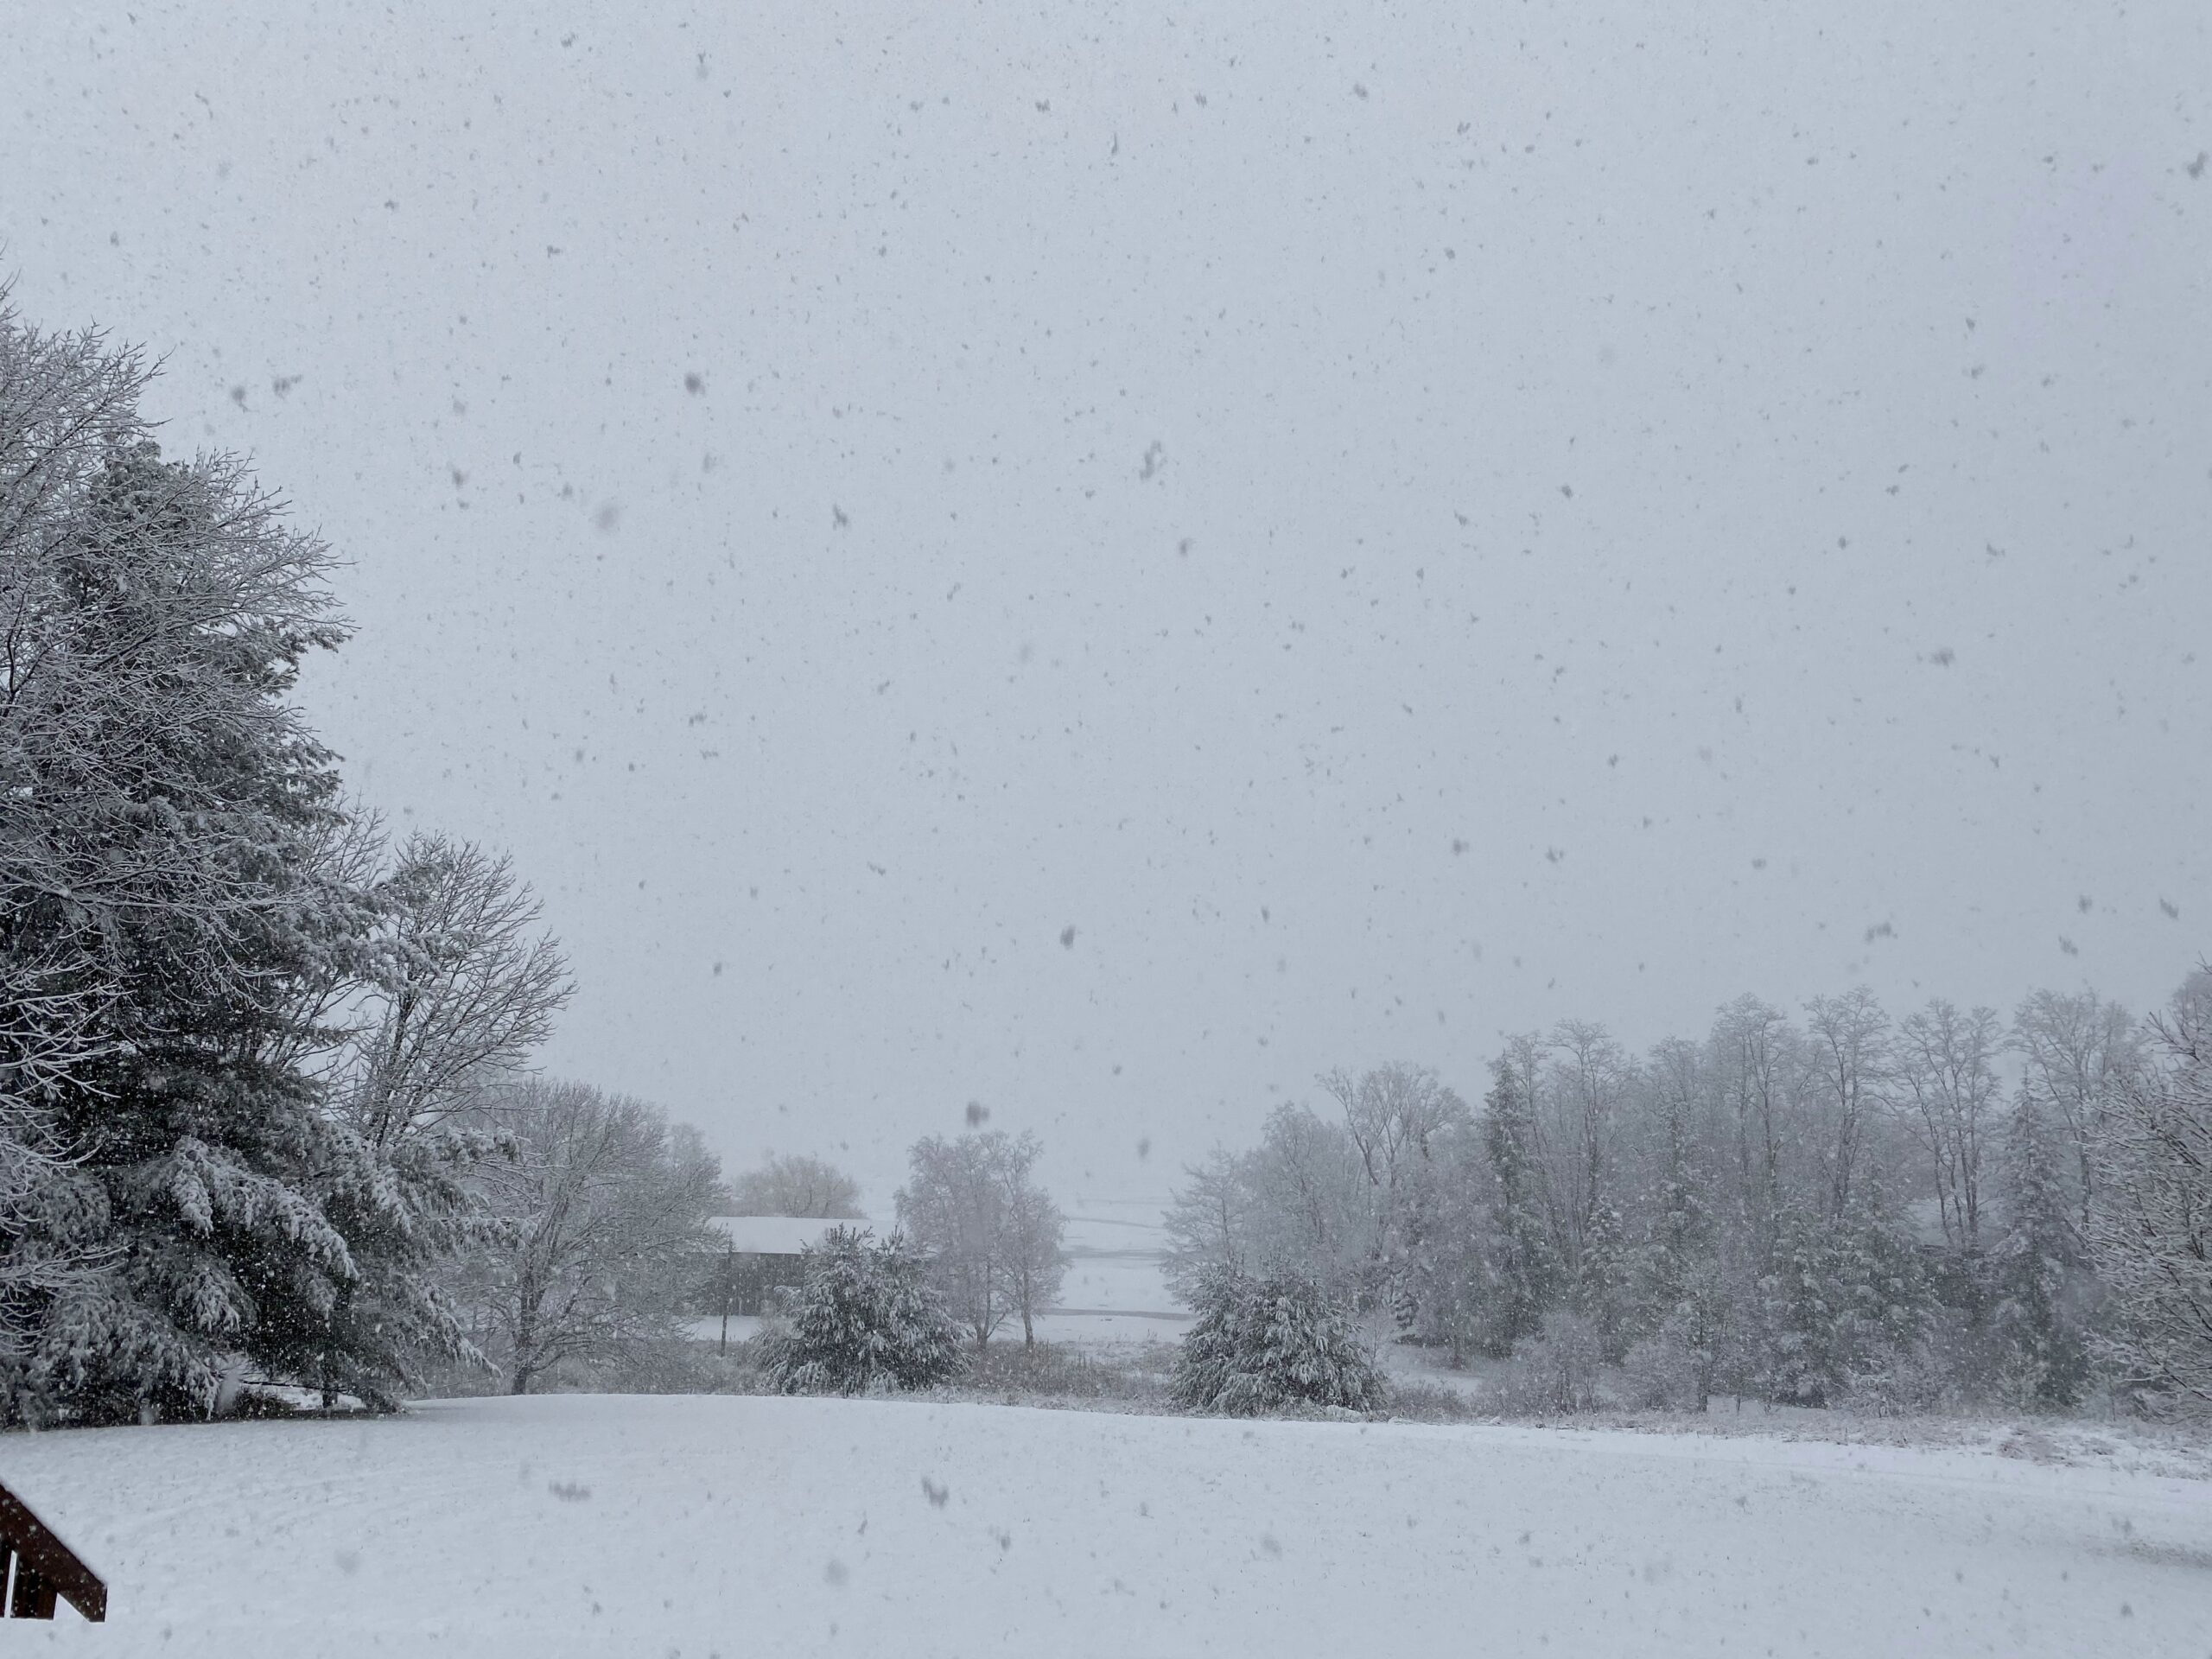 A Snowy Day at Camp Michigania